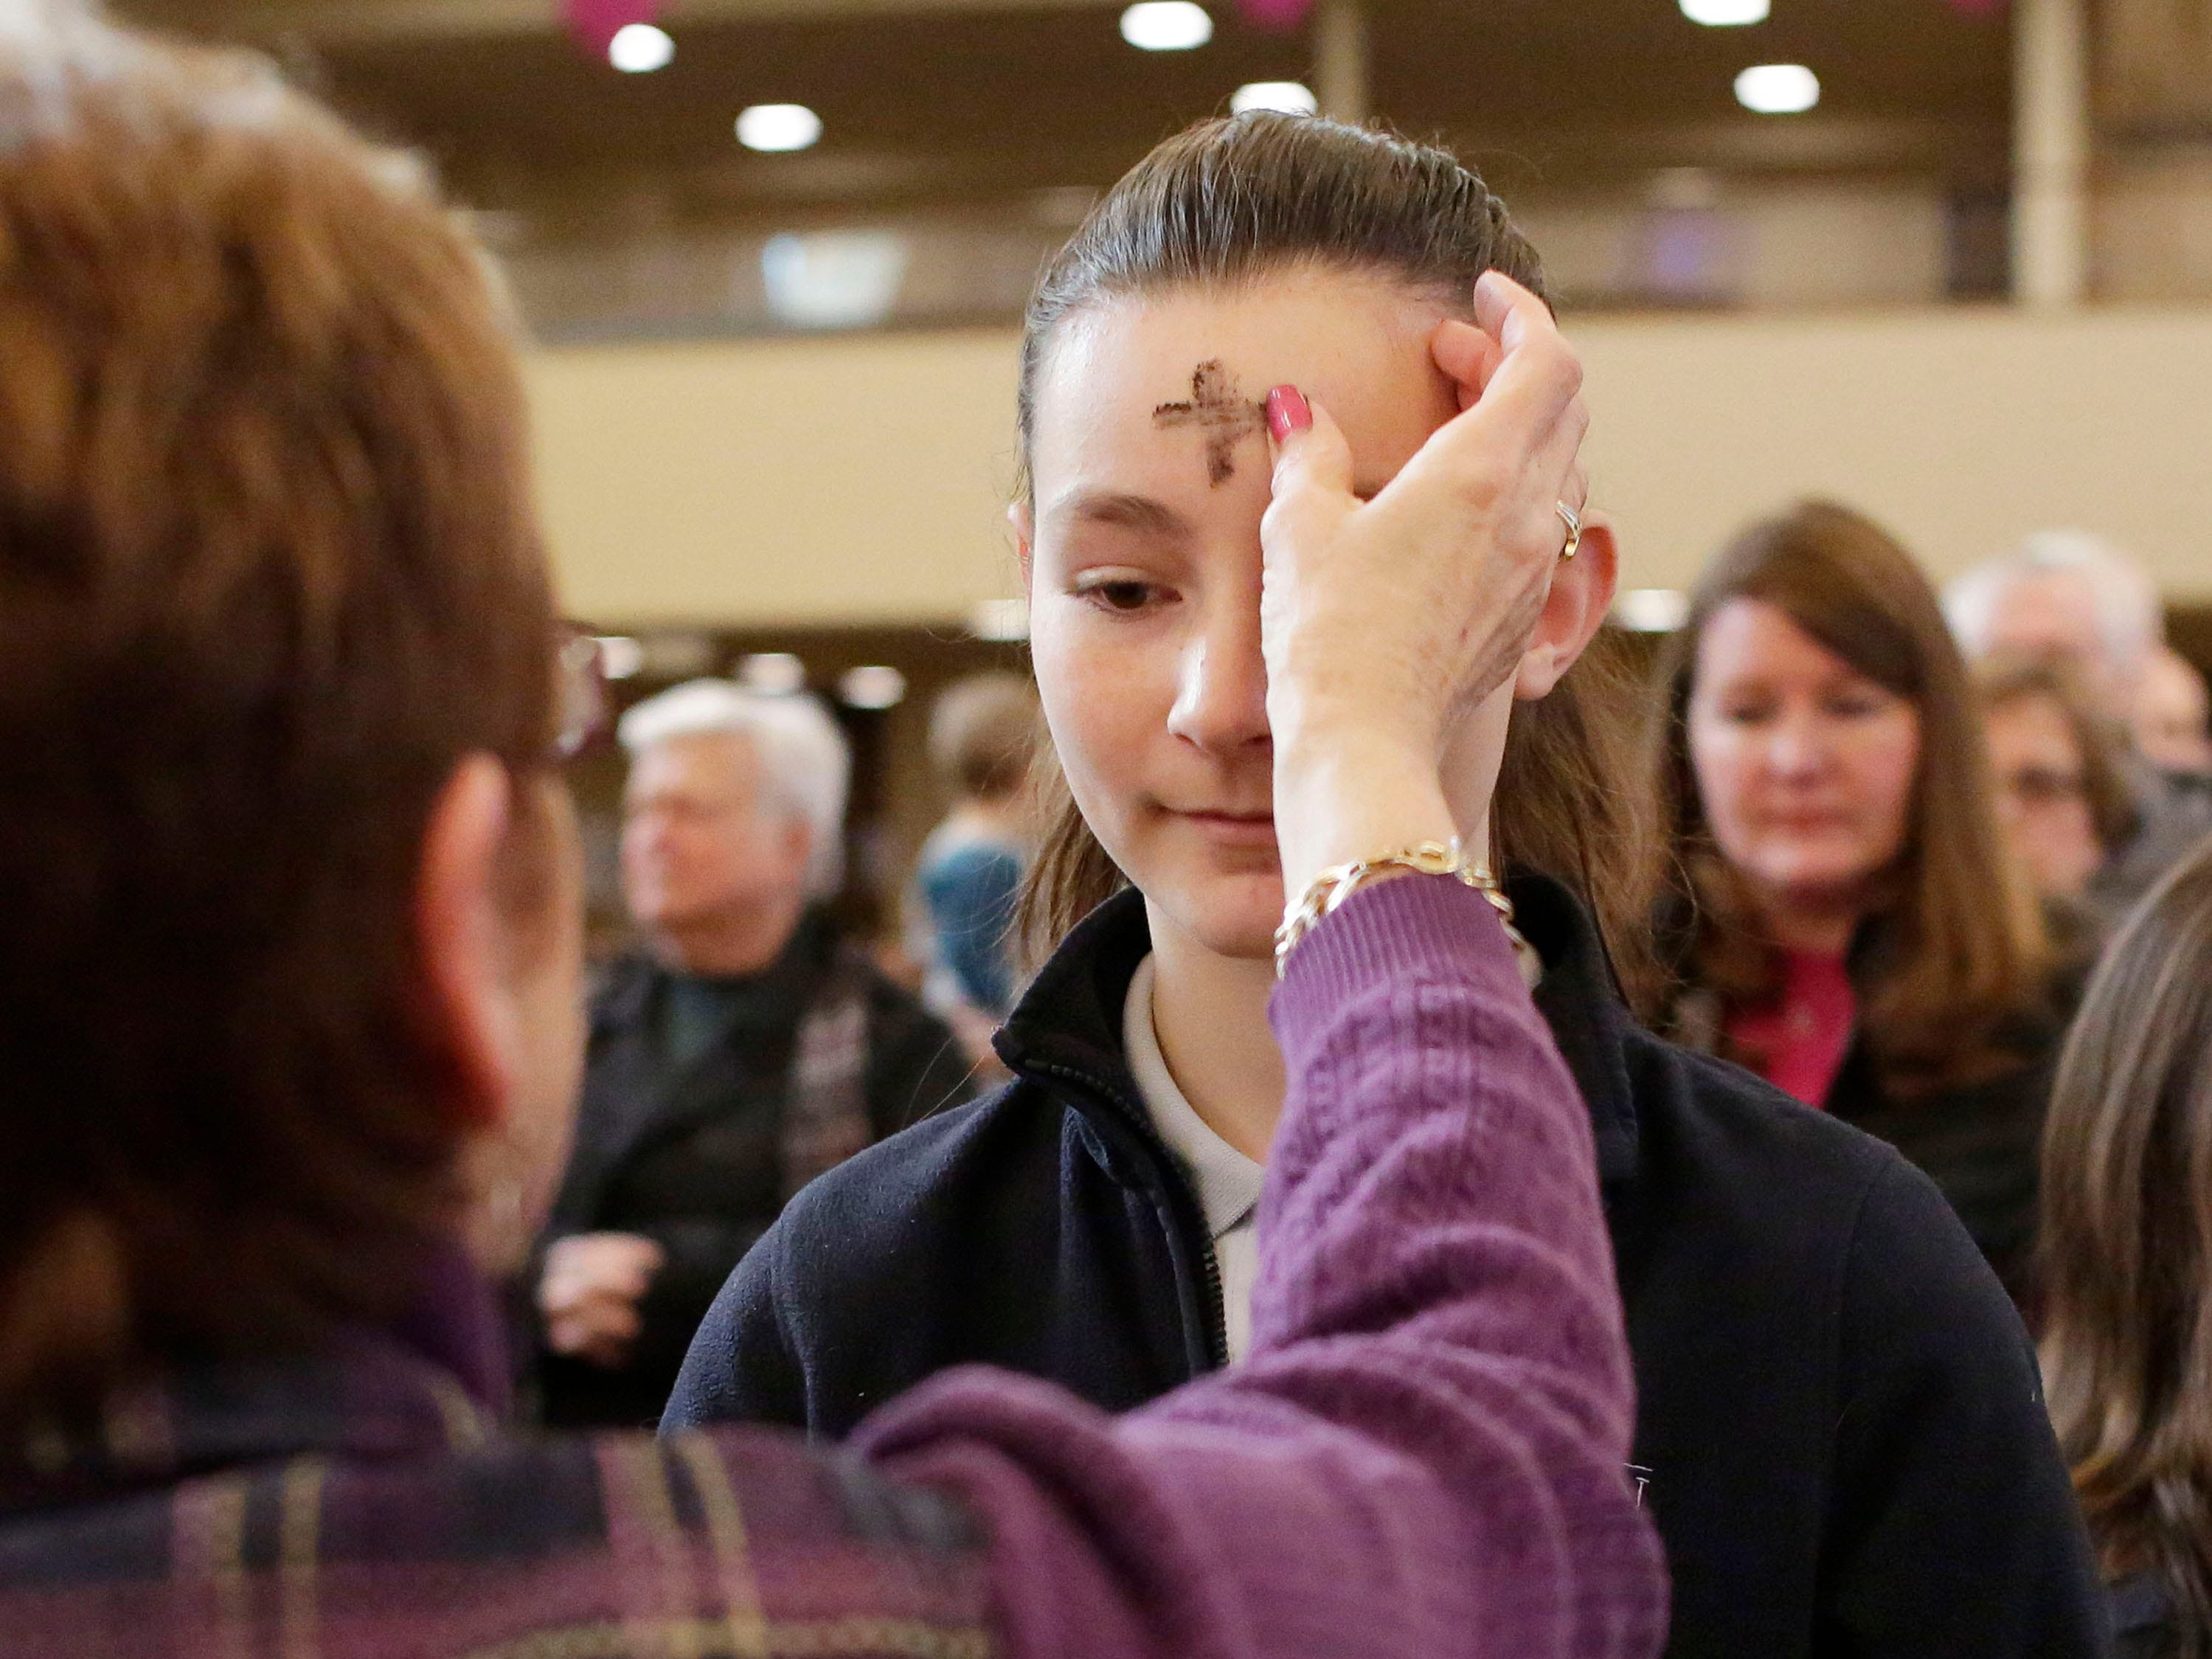 St. Elizabeth Ann Seton Catholic School student Eileen English receives ashes at Holy Name Catholic Church Wednesday, February 14, 2018, in Sheboygan, Wis.